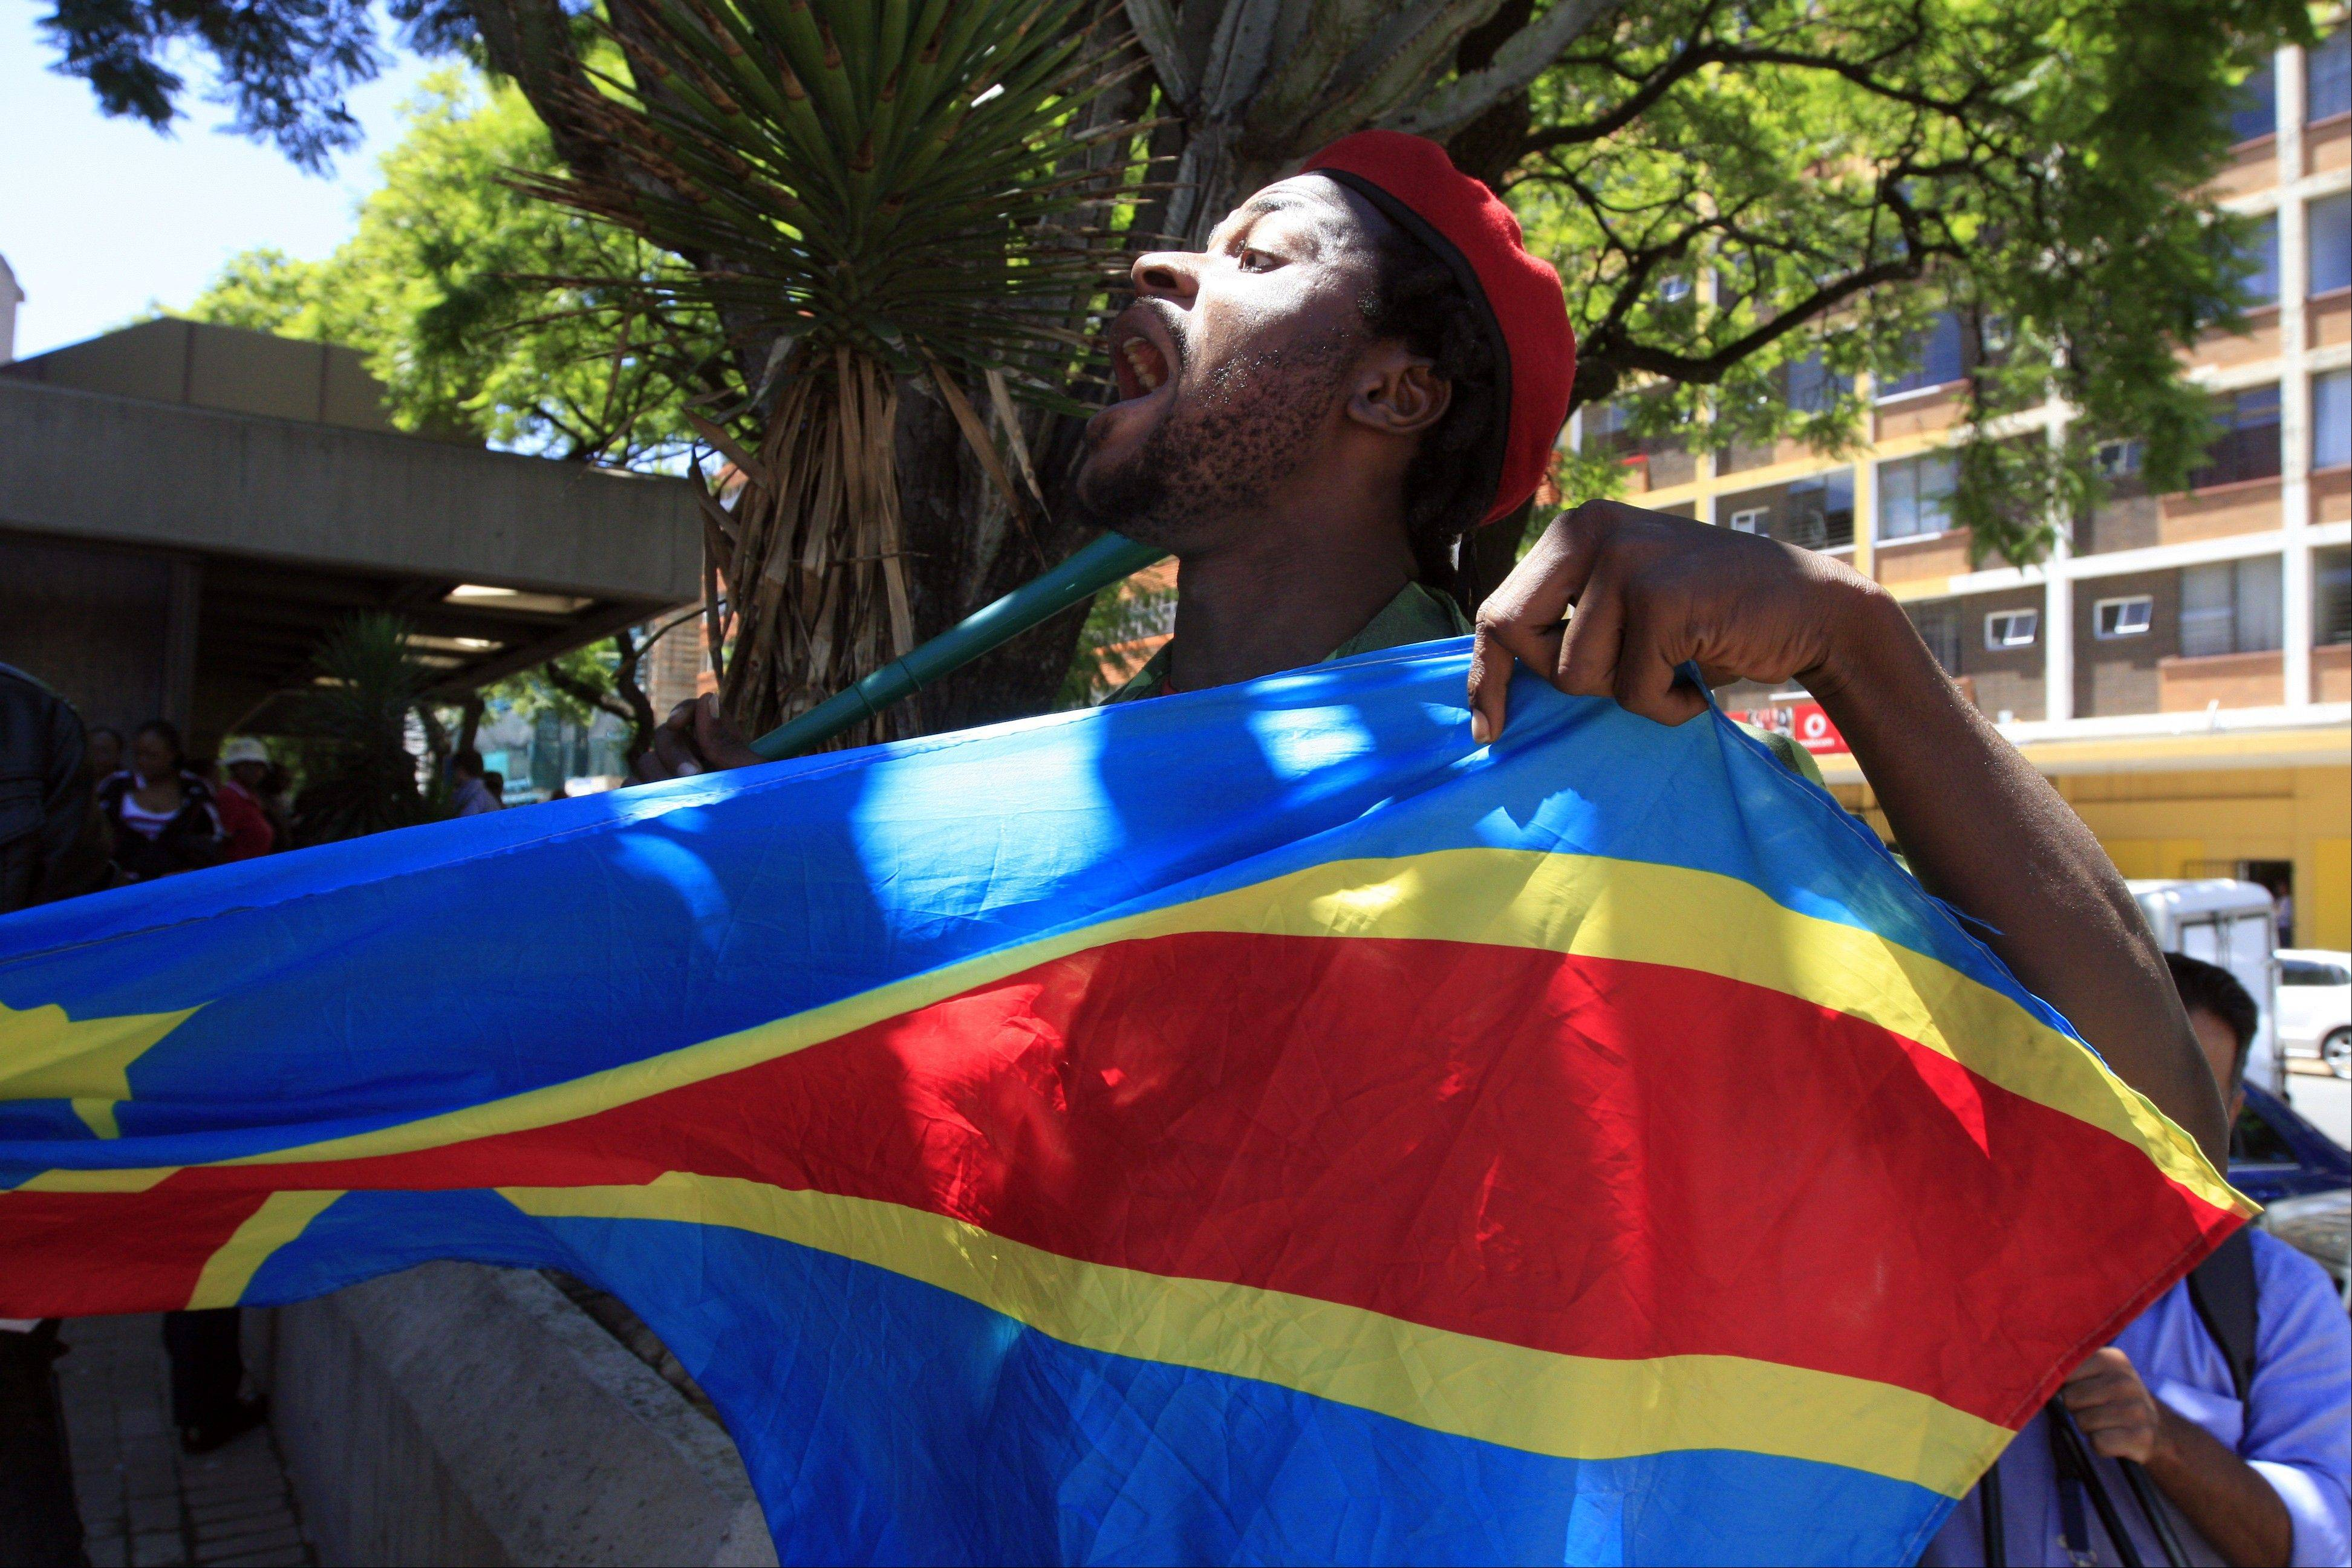 A supporter holds a Democratic Repupublic of Congo flag outside the court in Pretoria, South Africa, on Thursday, Feb. 7, 2013. Nineteen alleged members of a Congolese rebel group -- including one U.S. citizen -- sought help in their effort to overthrow Congolese President Joseph Kabila, offering mining rights in their resource-rich country in exchange for weapons and training, a prosecutor said Thursday.